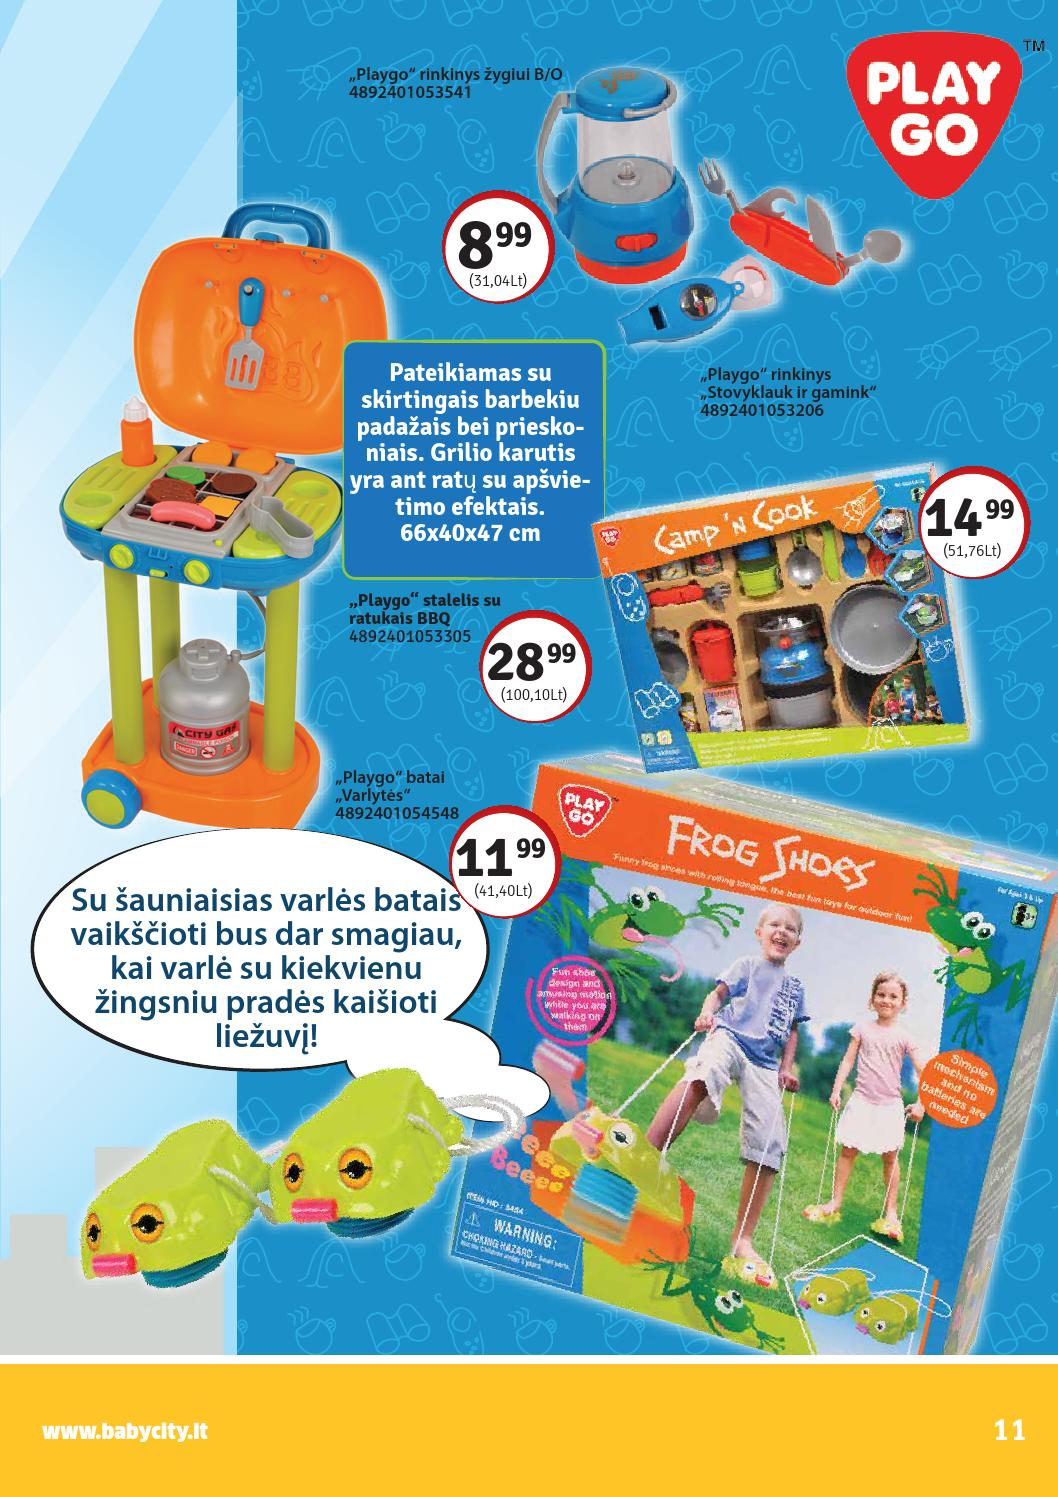 Baby City - Toy City catalogue by Kotryna Group - Issuu